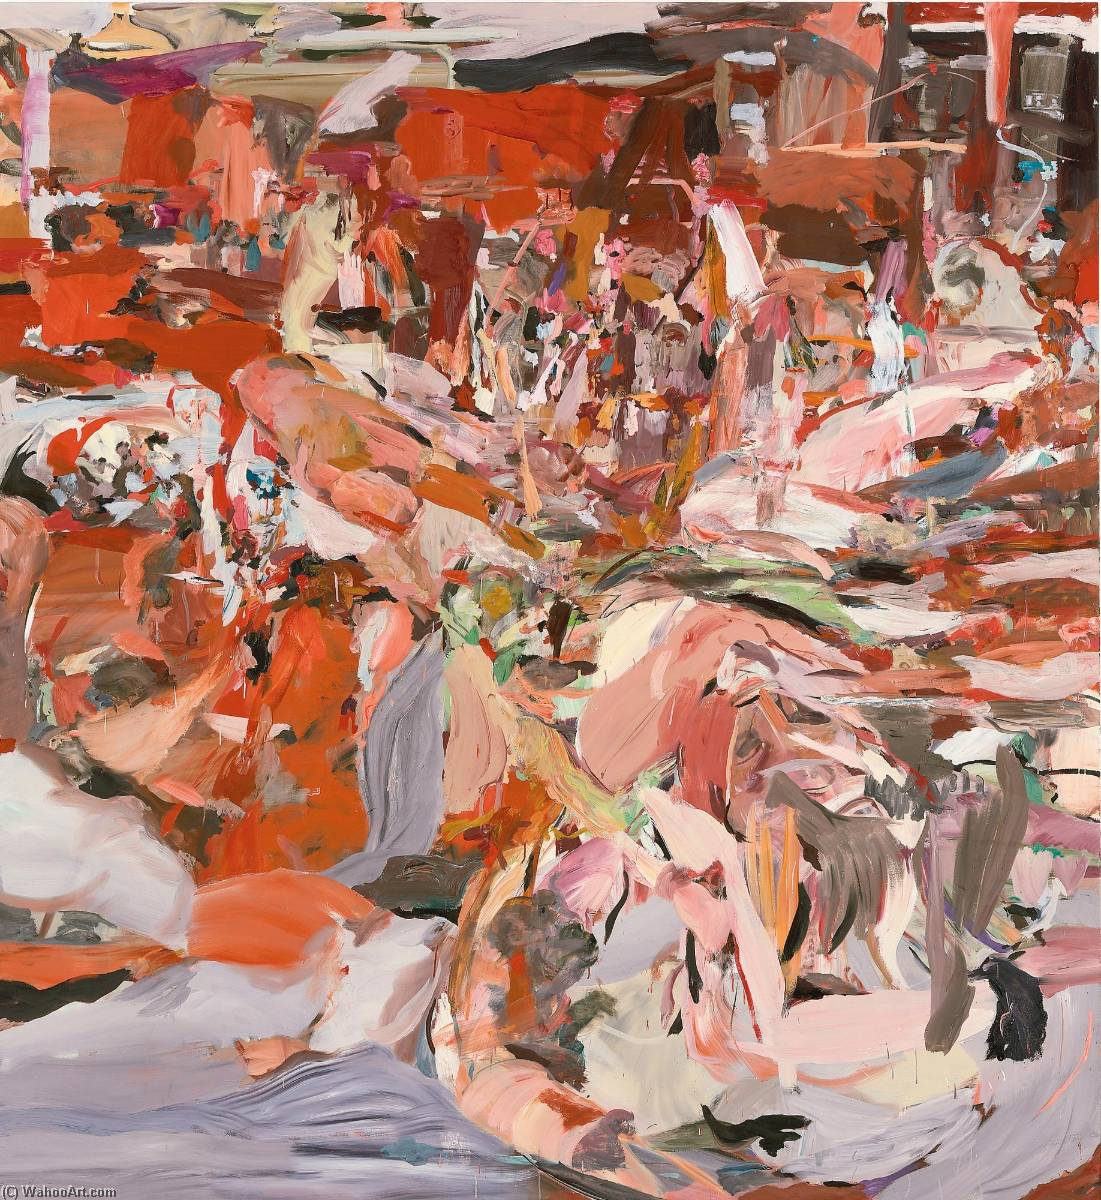 Lady with a Little Dog, Oil On Canvas by Cecily Brown